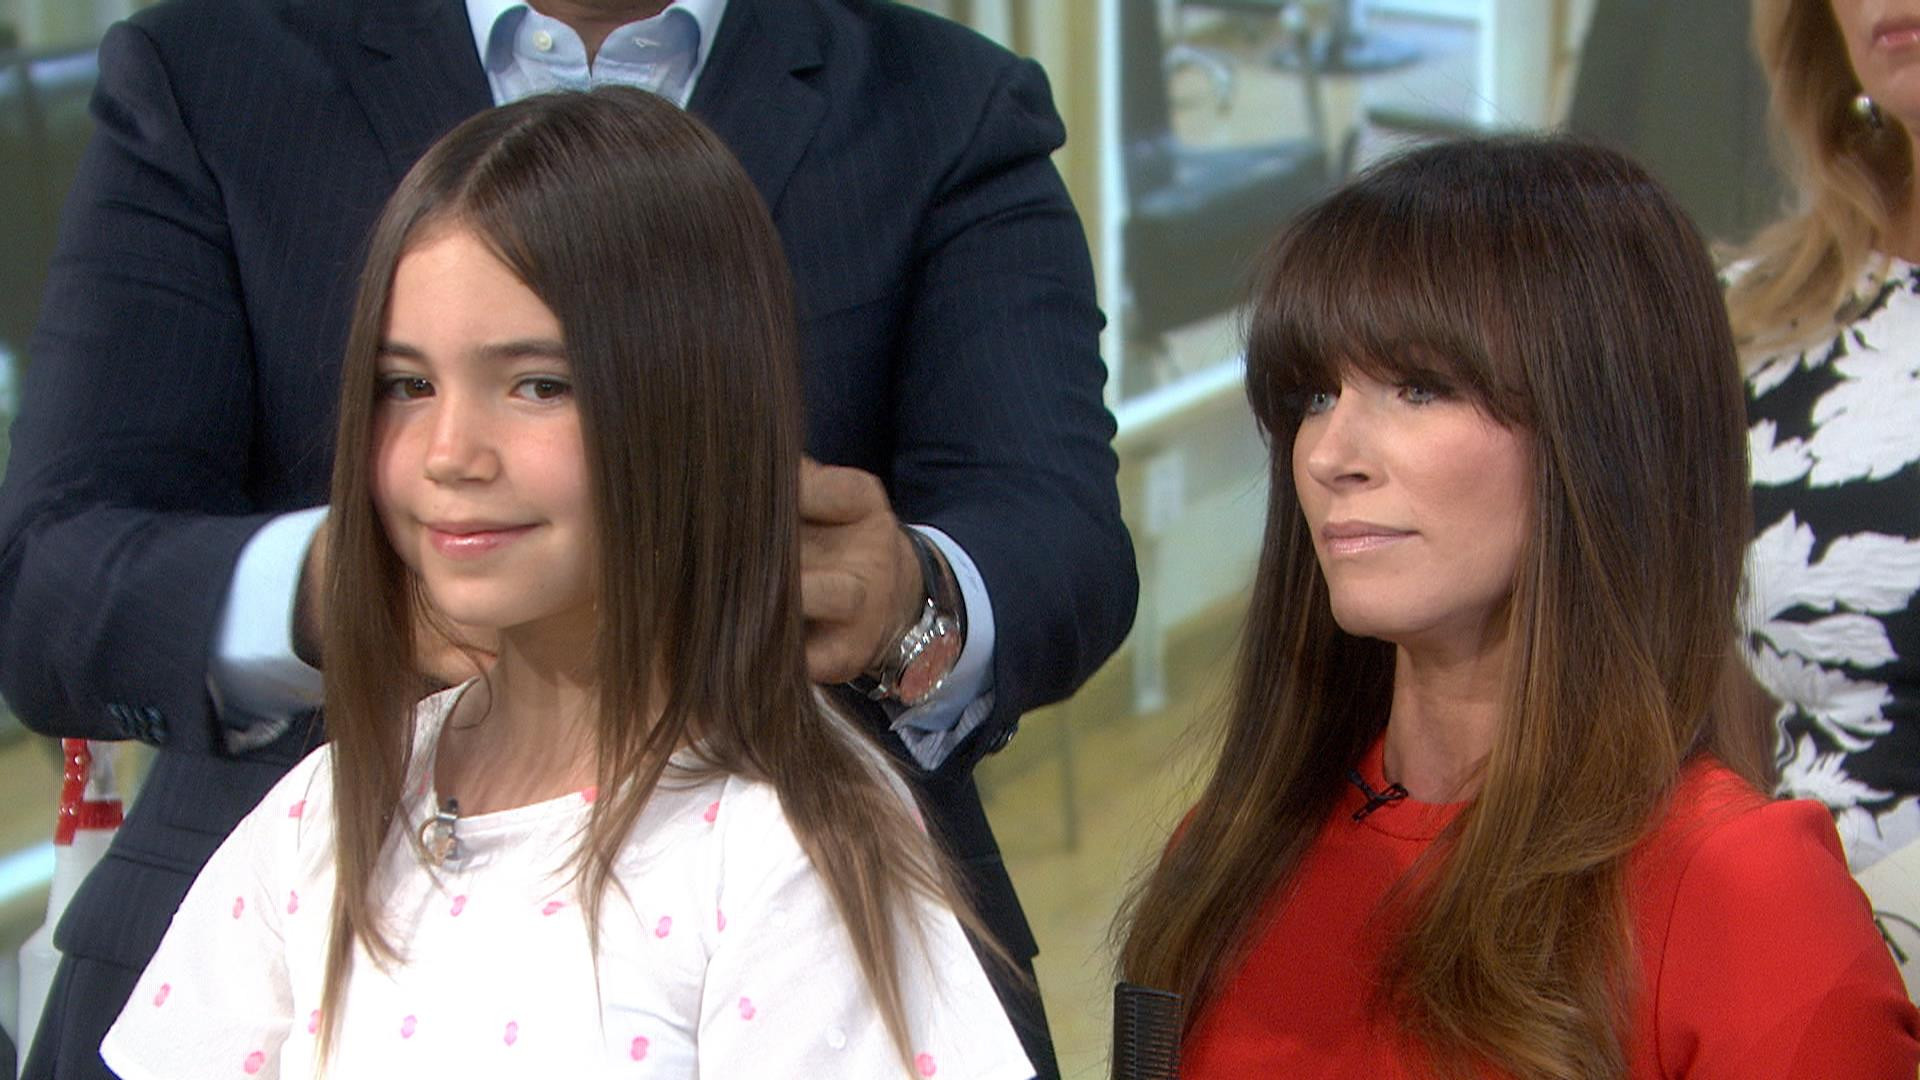 Best ideas about How To Cut Girls Hair . Save or Pin Easy hairstyles for girls that you can create in minutes Now.